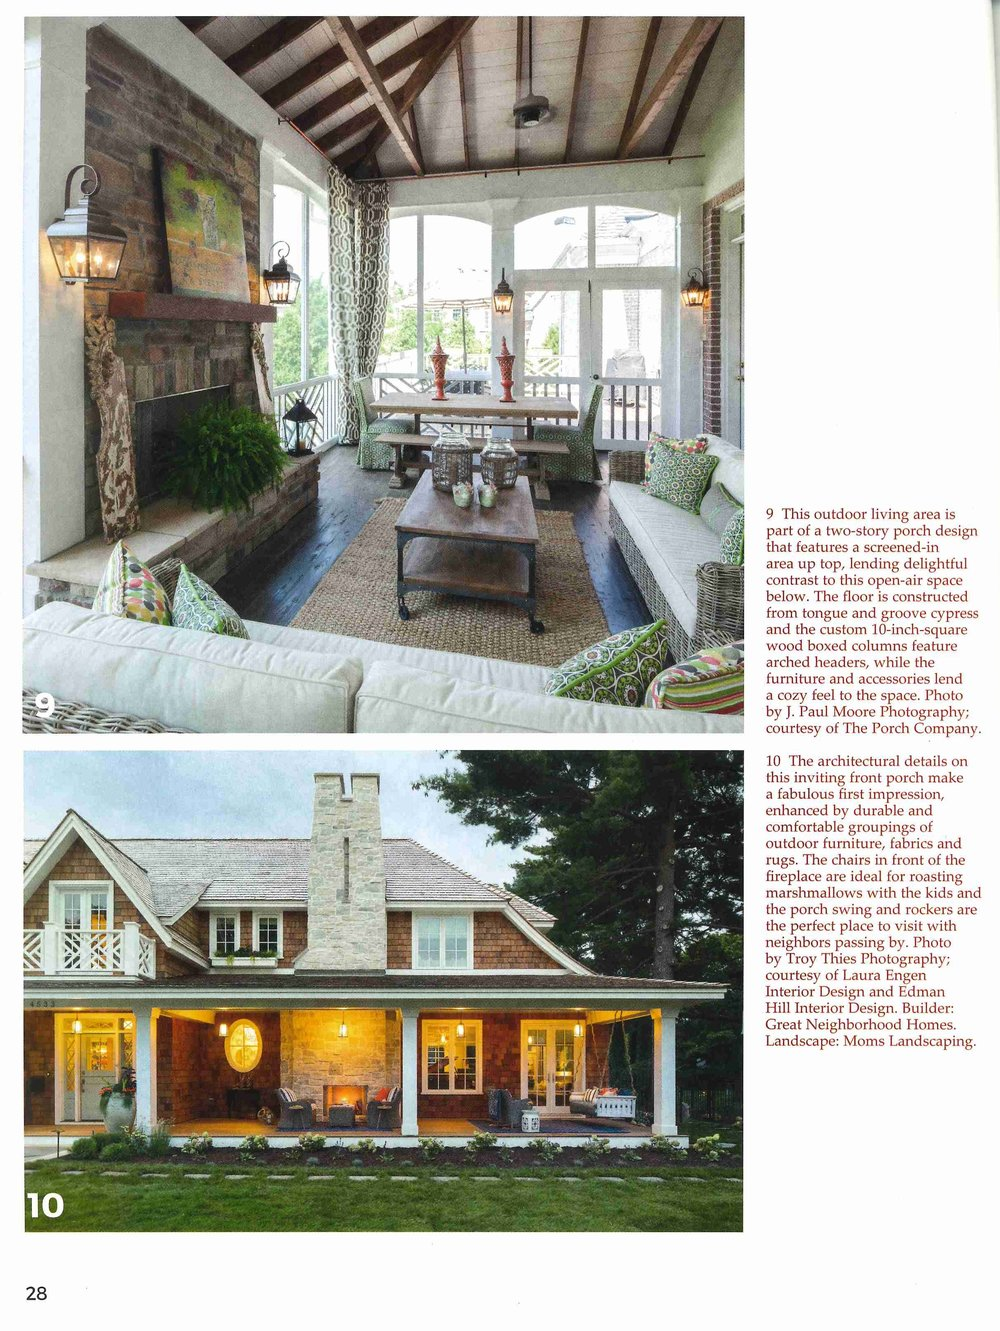 Kentucky Homes pg 28.jpg